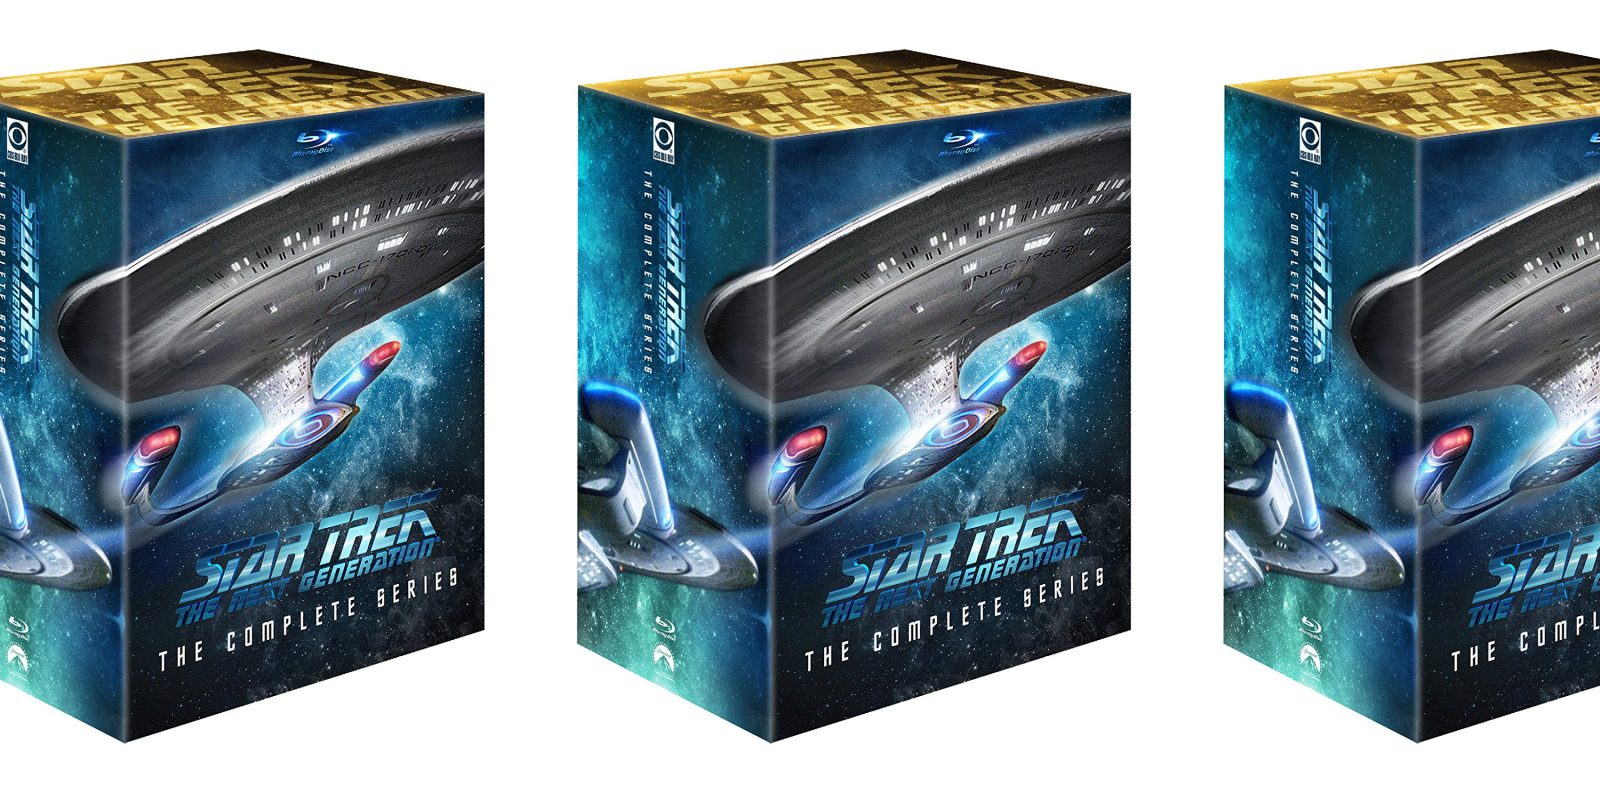 Blu-rays from $5: Star Trek TNG Series, Star Wars, Hobbs & Shaw, more